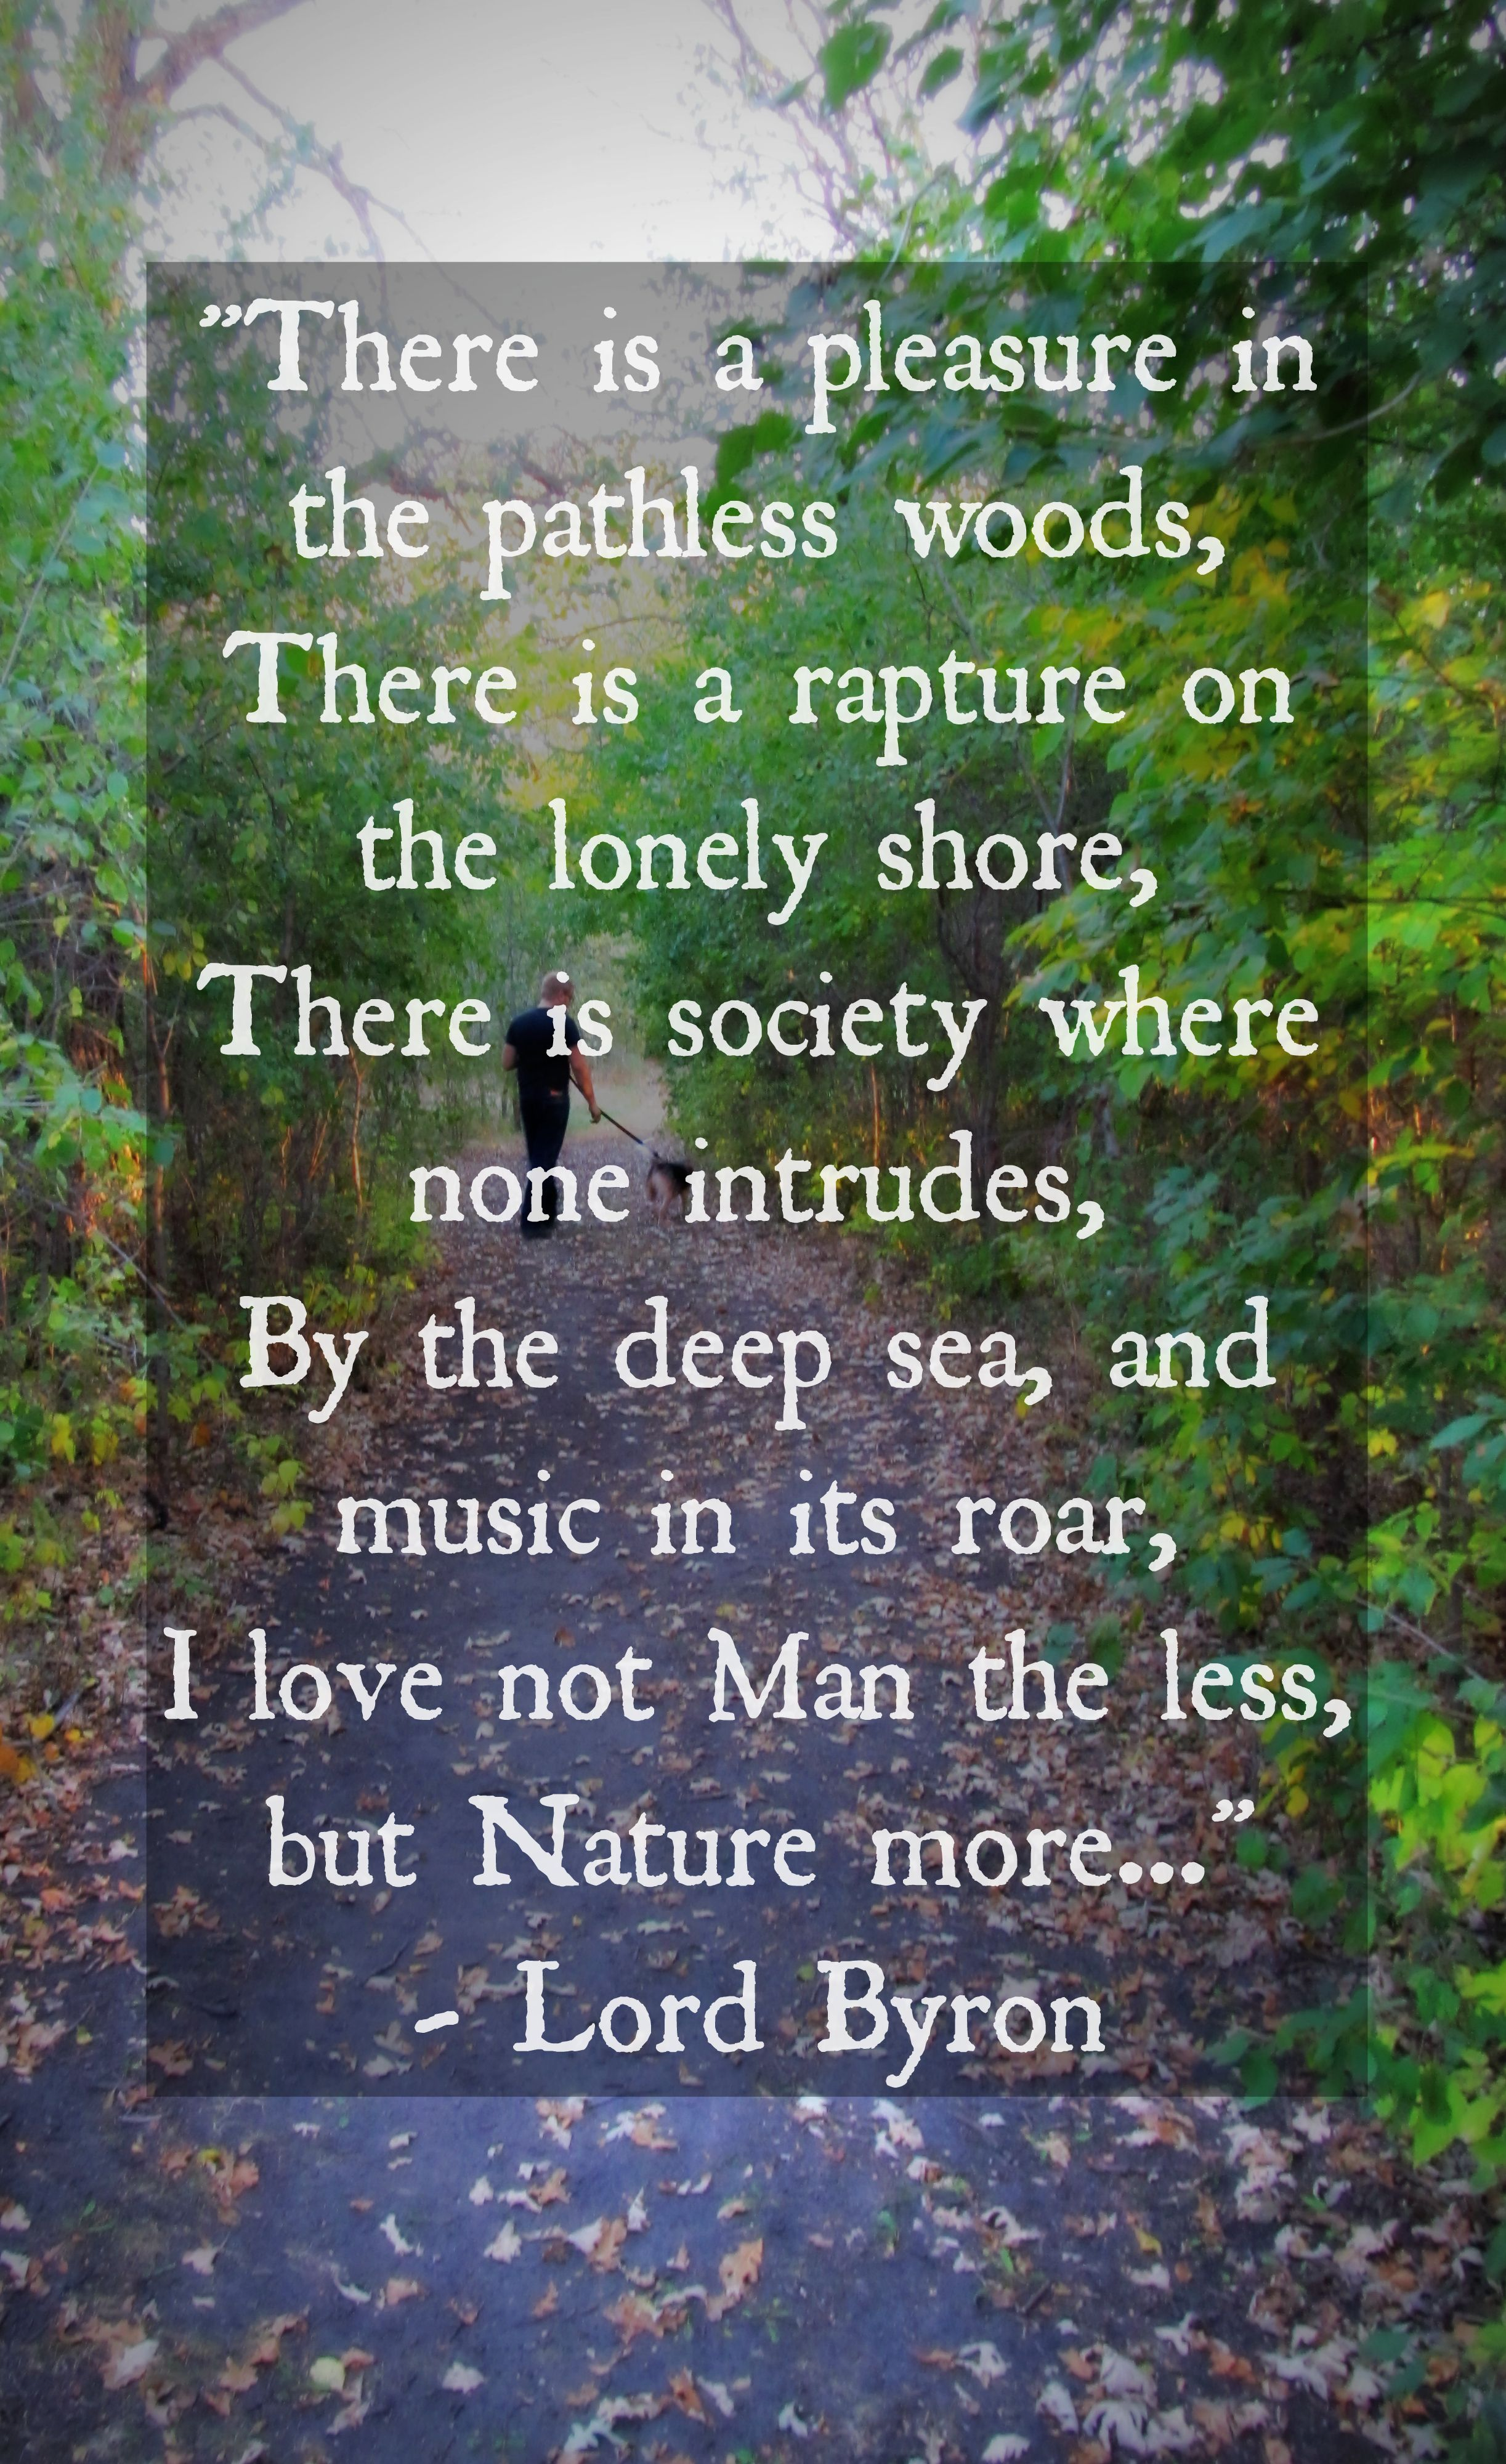 lord byron nature poem